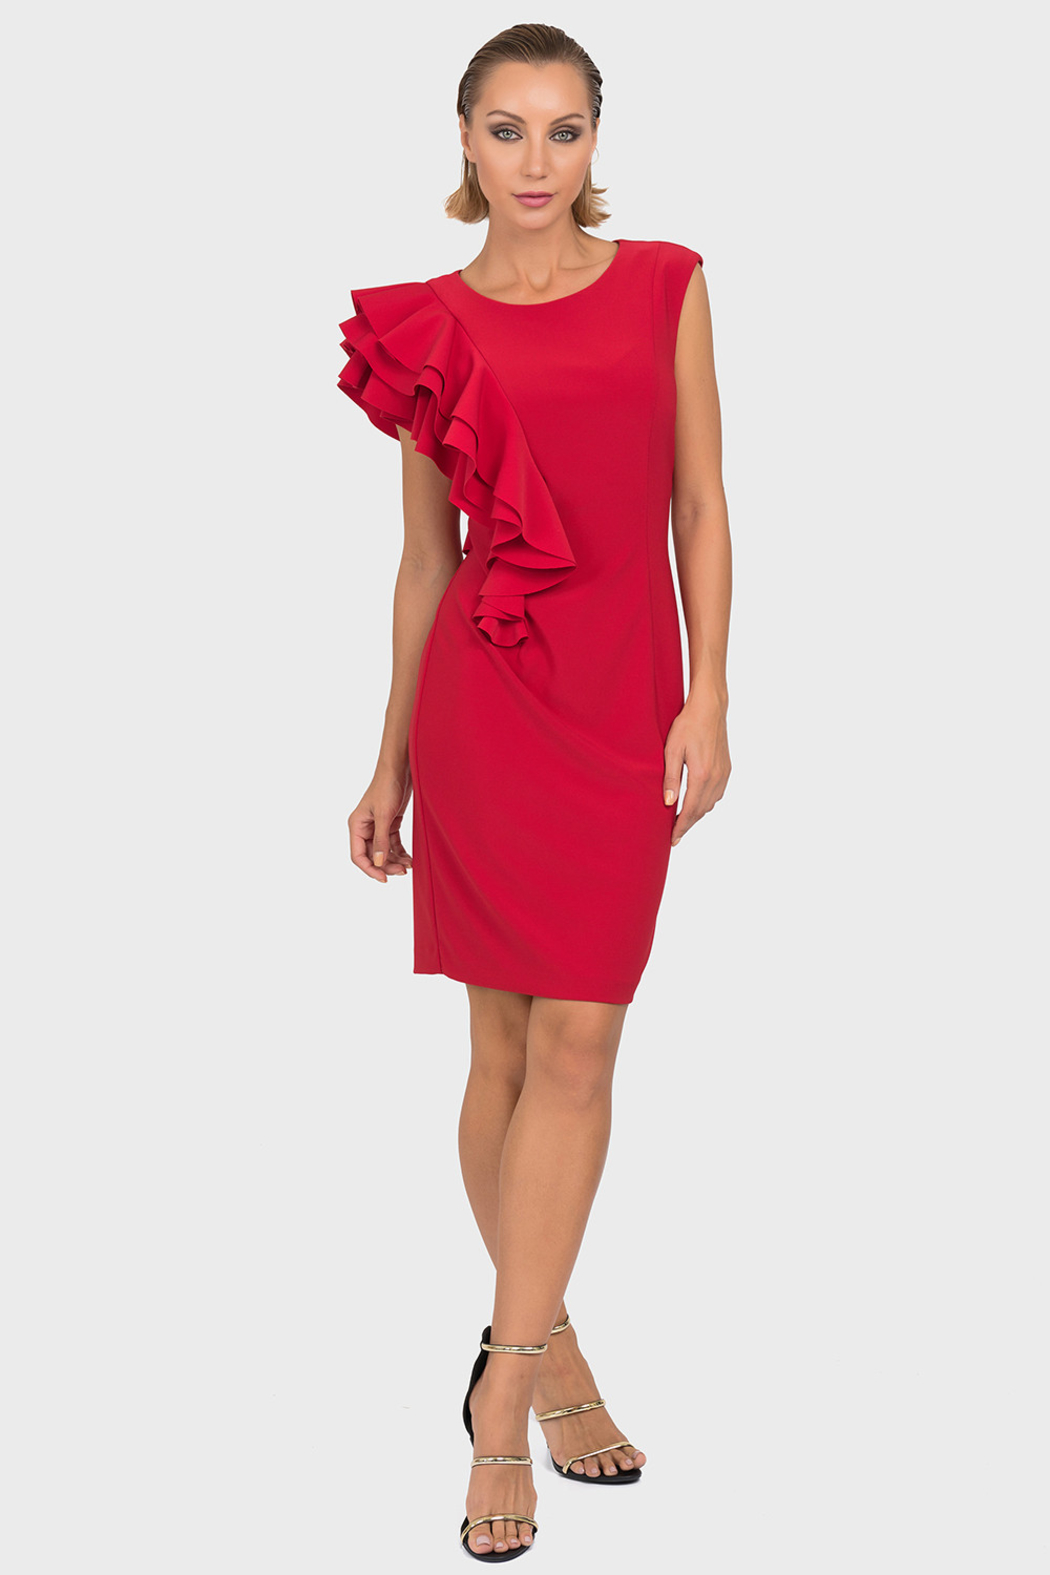 Joseph Ribkoff Cascading Ruffles Dress, Red or Black - Front Cropped Image